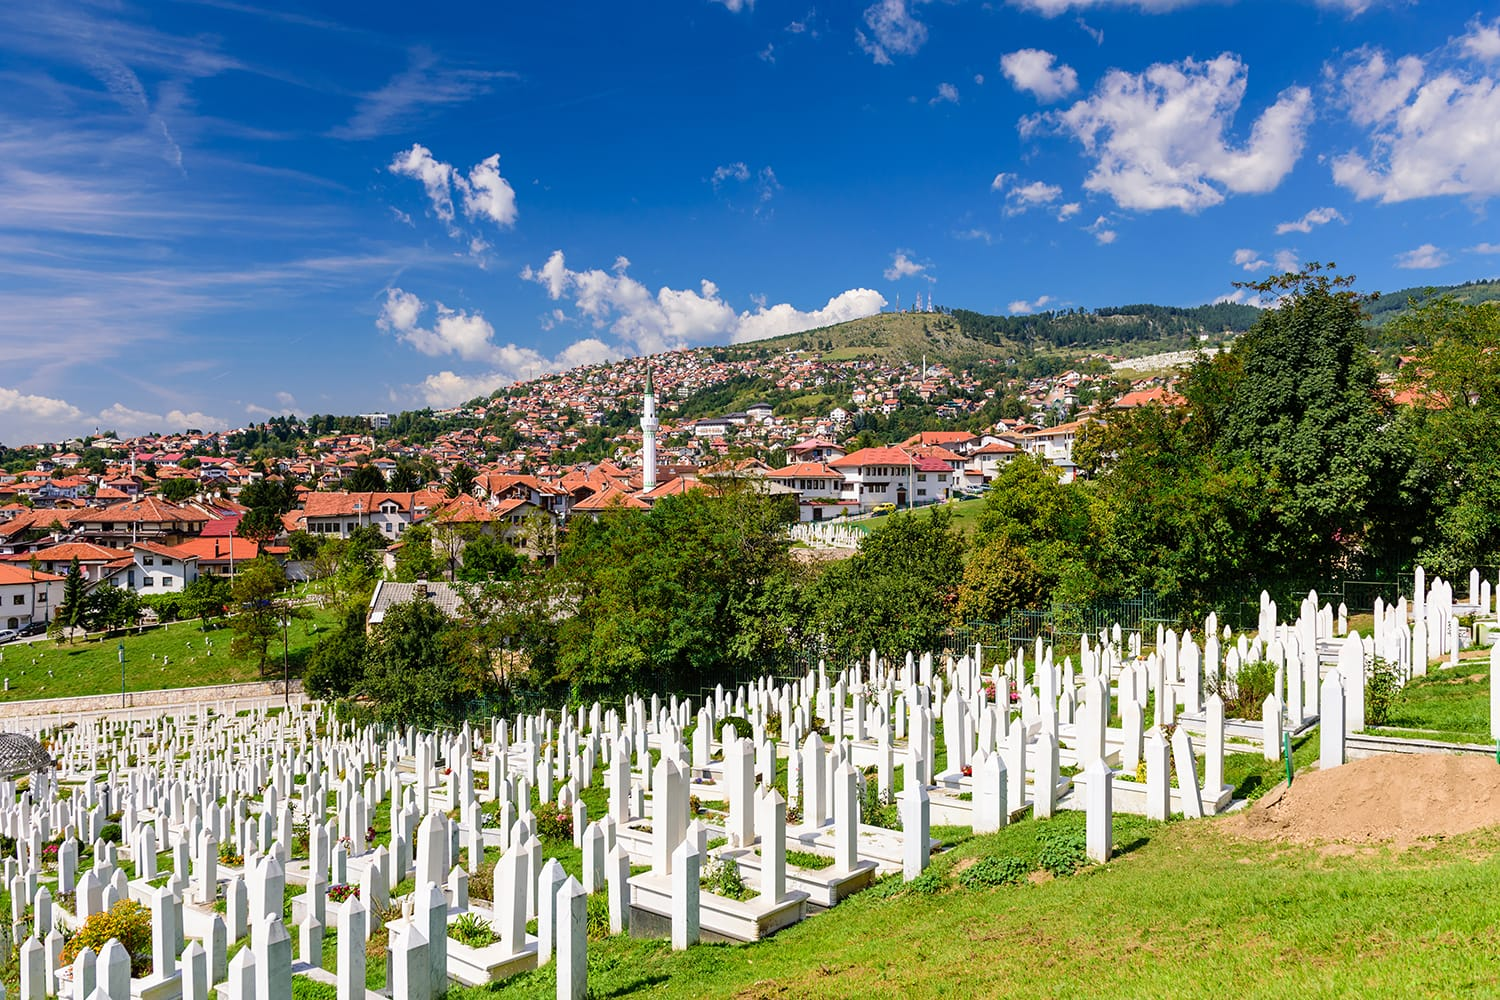 Cemetery in Sarajevo, capital city of Bosnia and Herzegovina